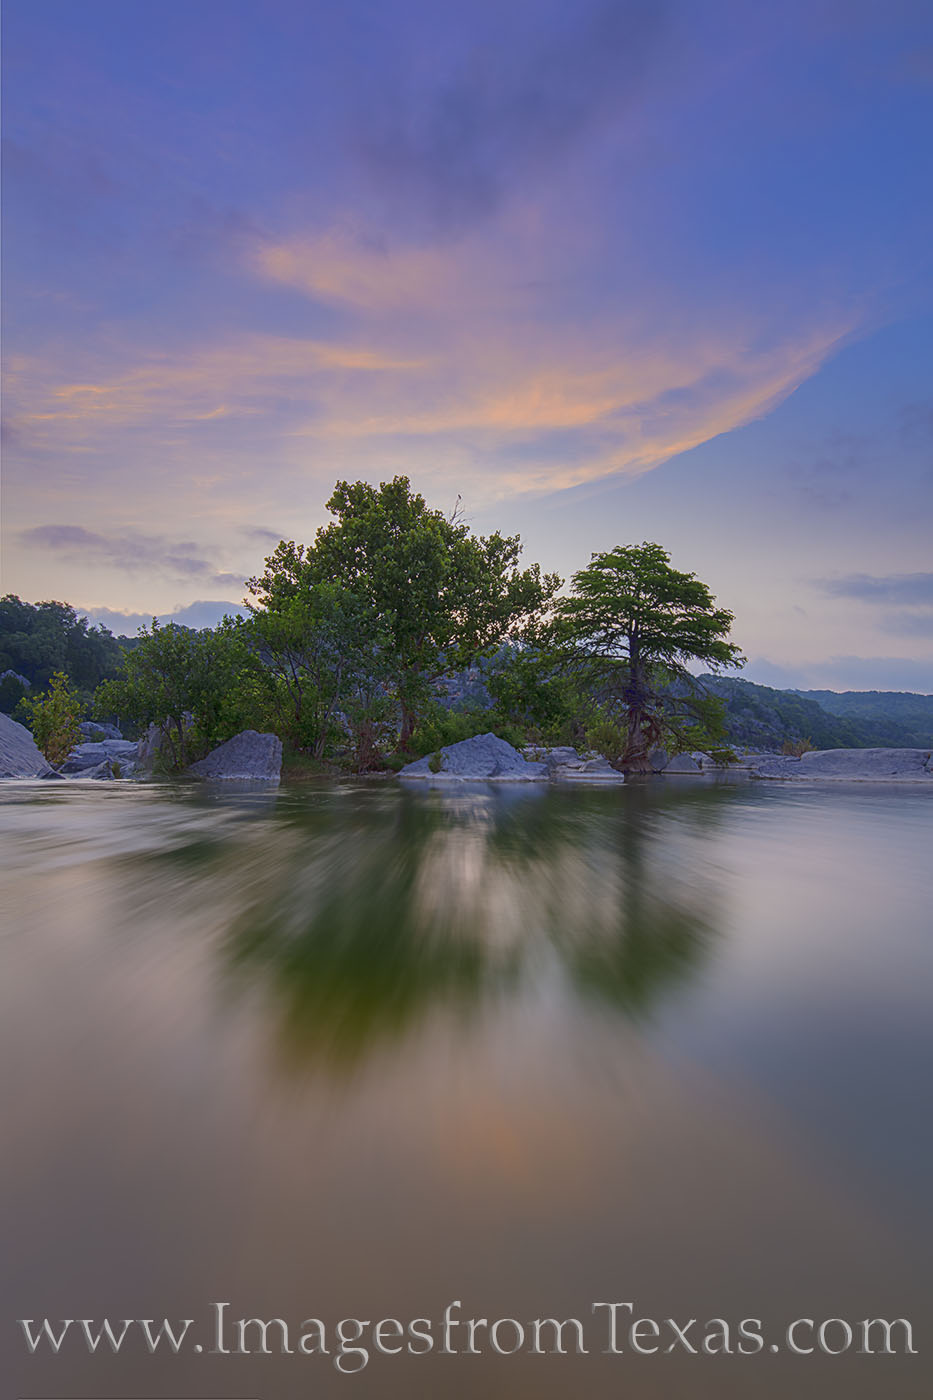 texas hill country, morning, pedernales, river, pedernales falls state park, texas parks, orange, blue, sunrise water, photo